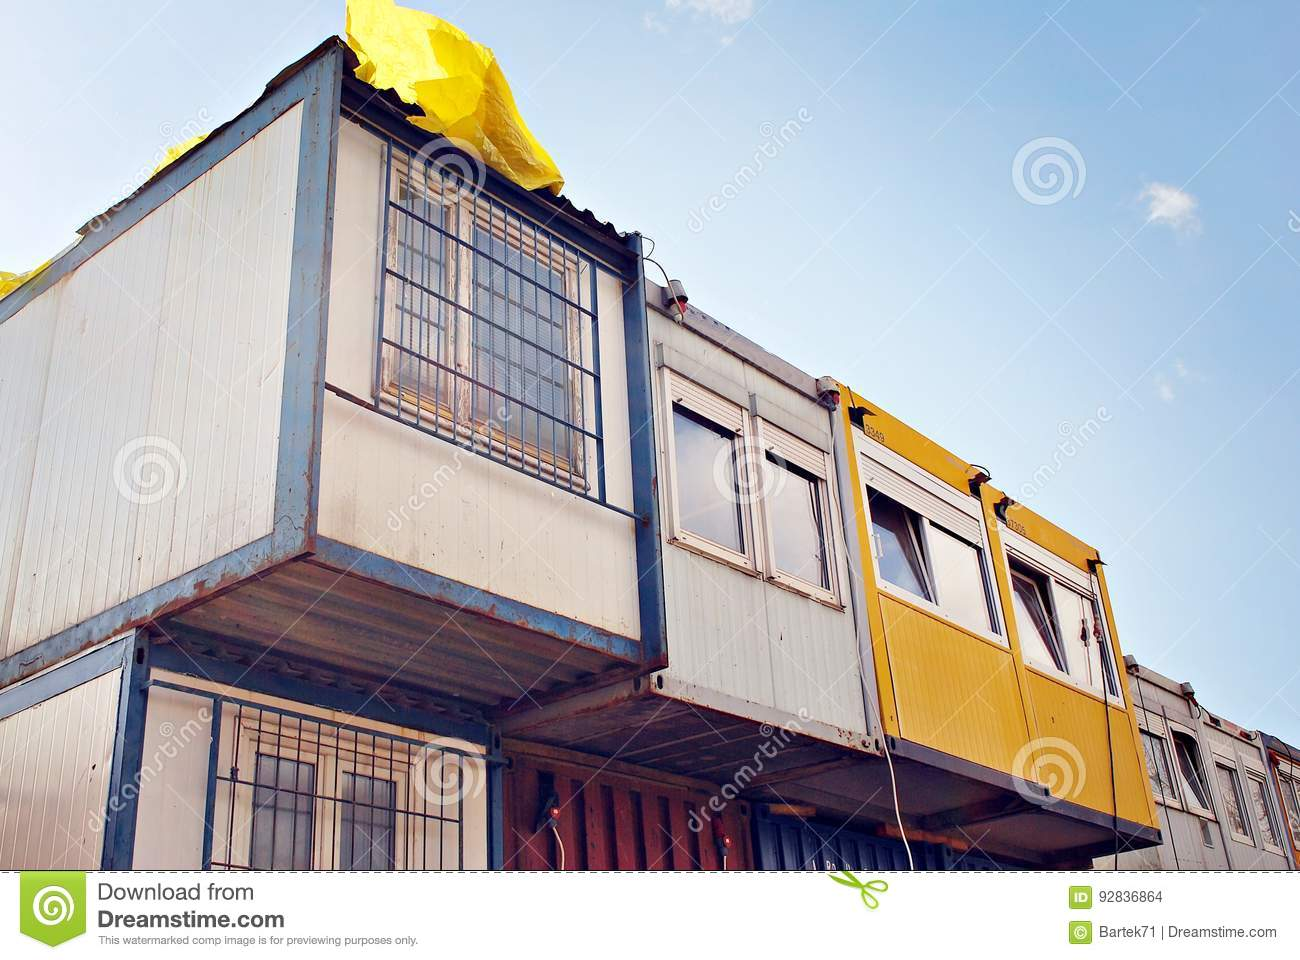 download mobile building in industrial site or office container stock photo image of industry container office building r77 container